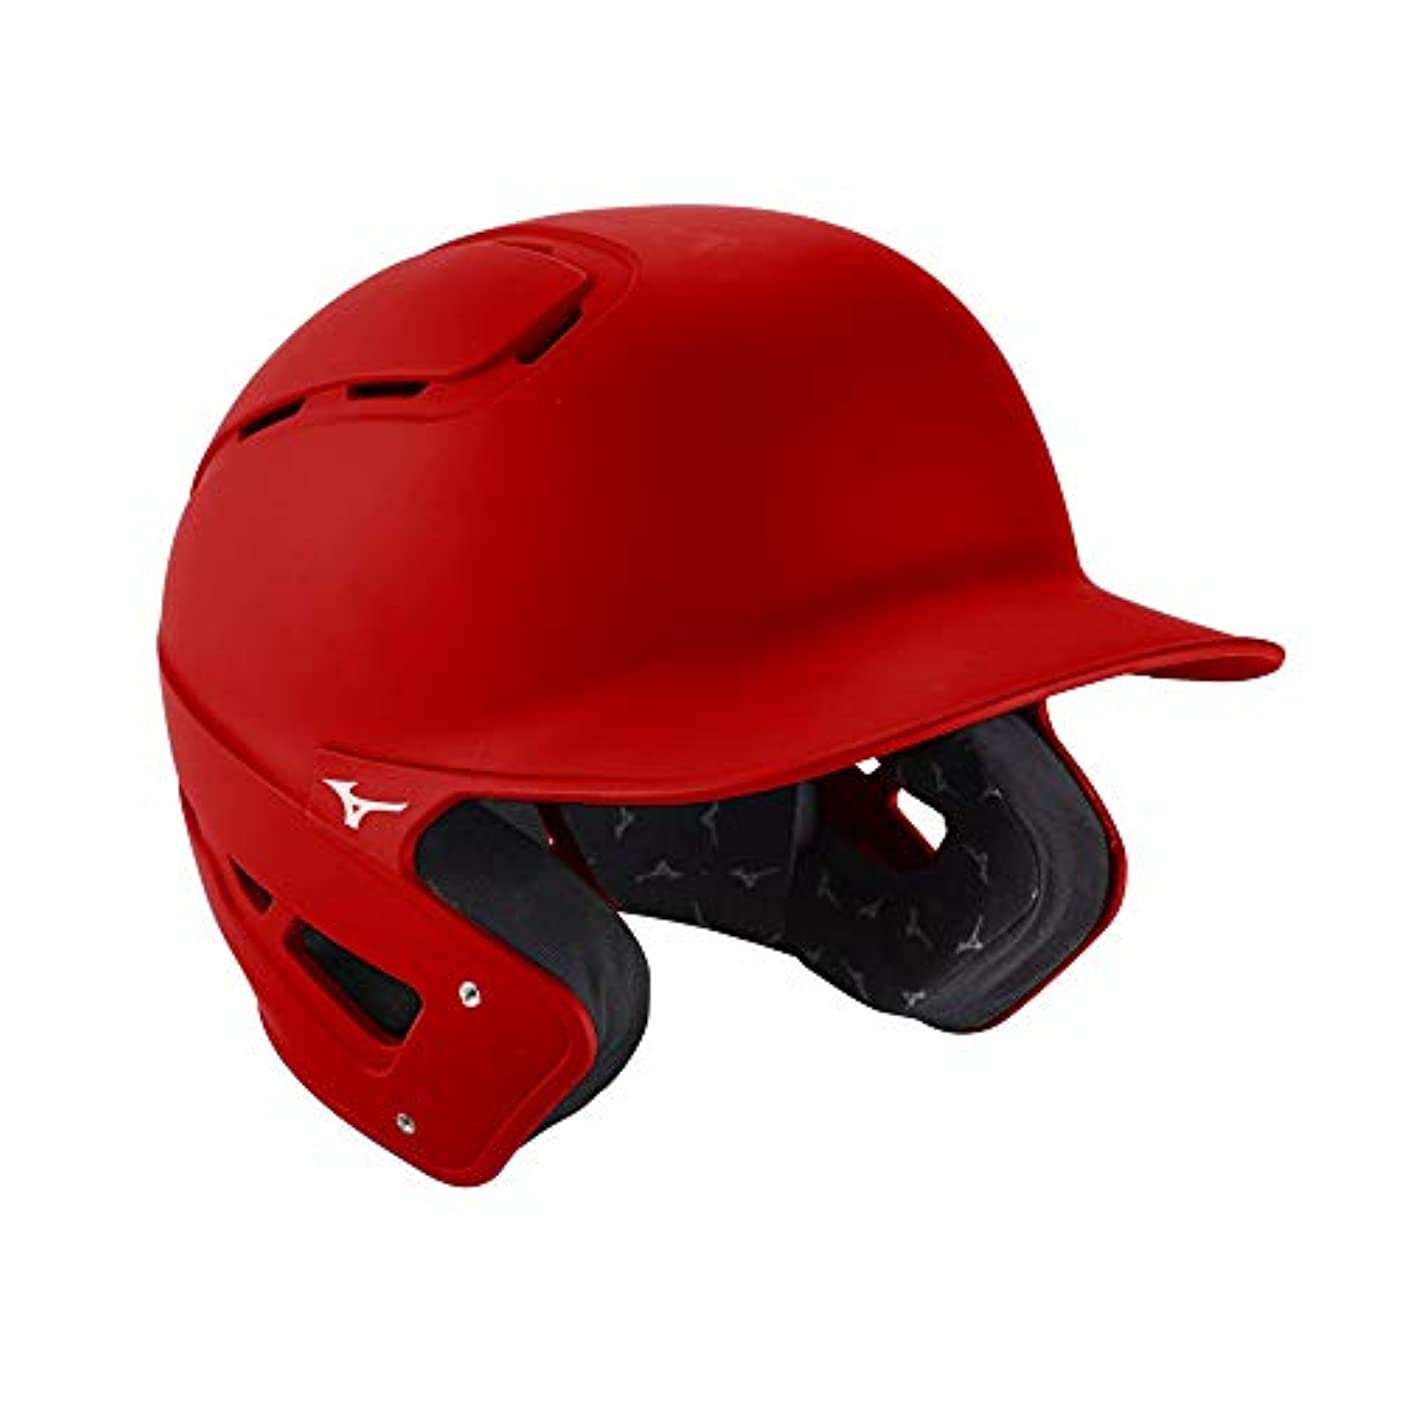 Mizuno B6 Fitted Adult Baseball Batting Helmet